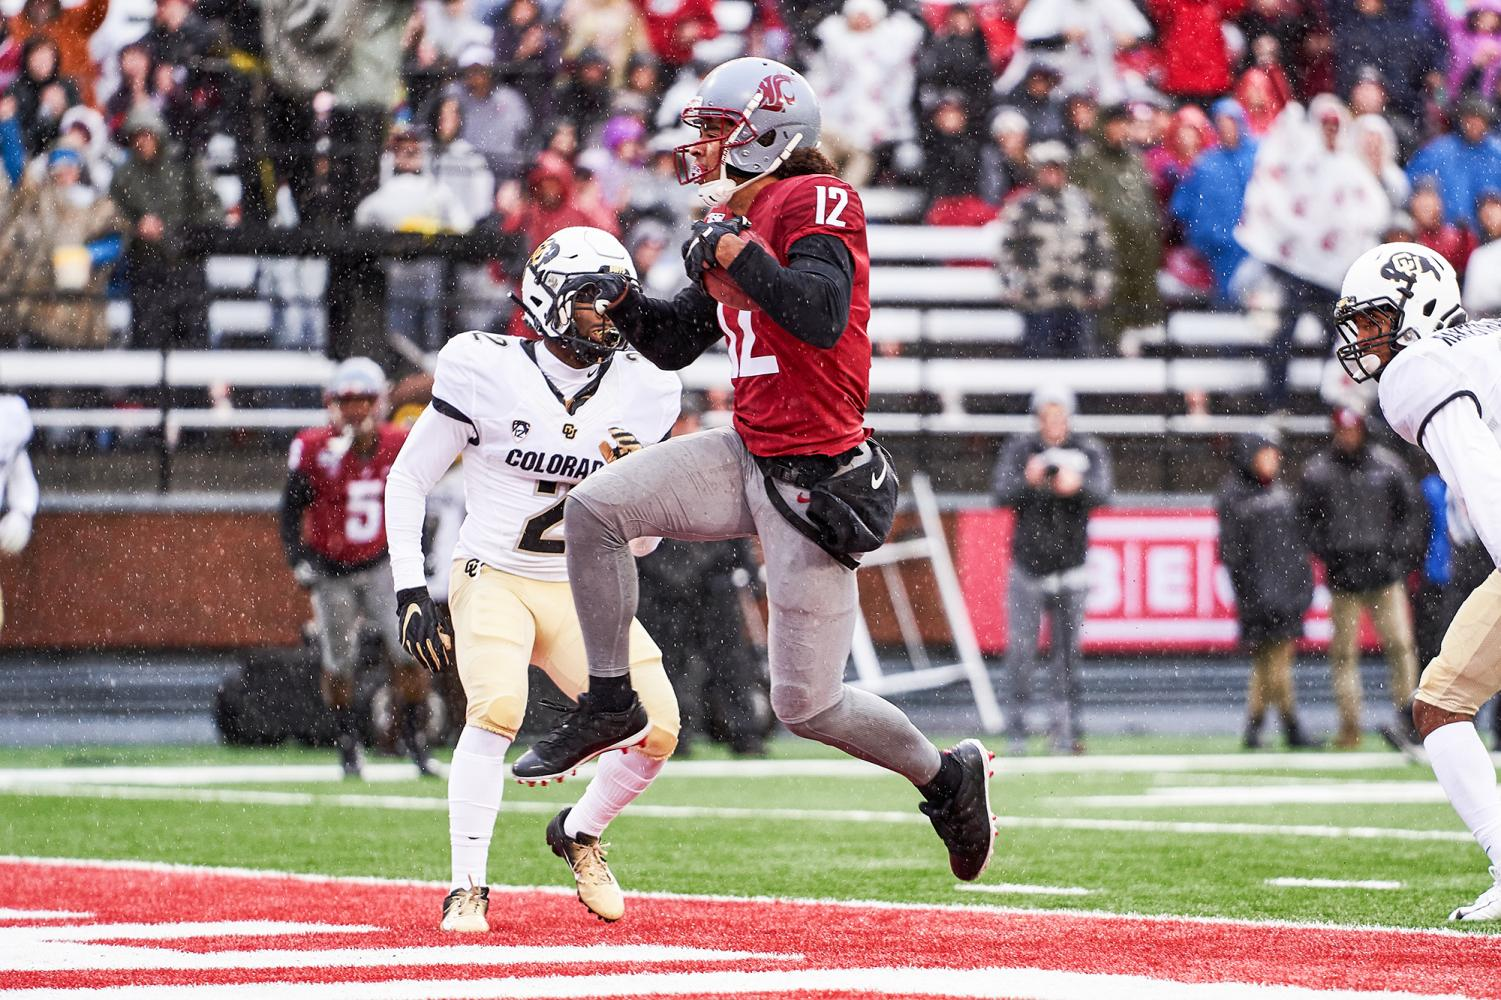 Senior wide receiver Dezmon Patmon runs into the end zone against Colorado on Oct.19 at Martin Stadium.